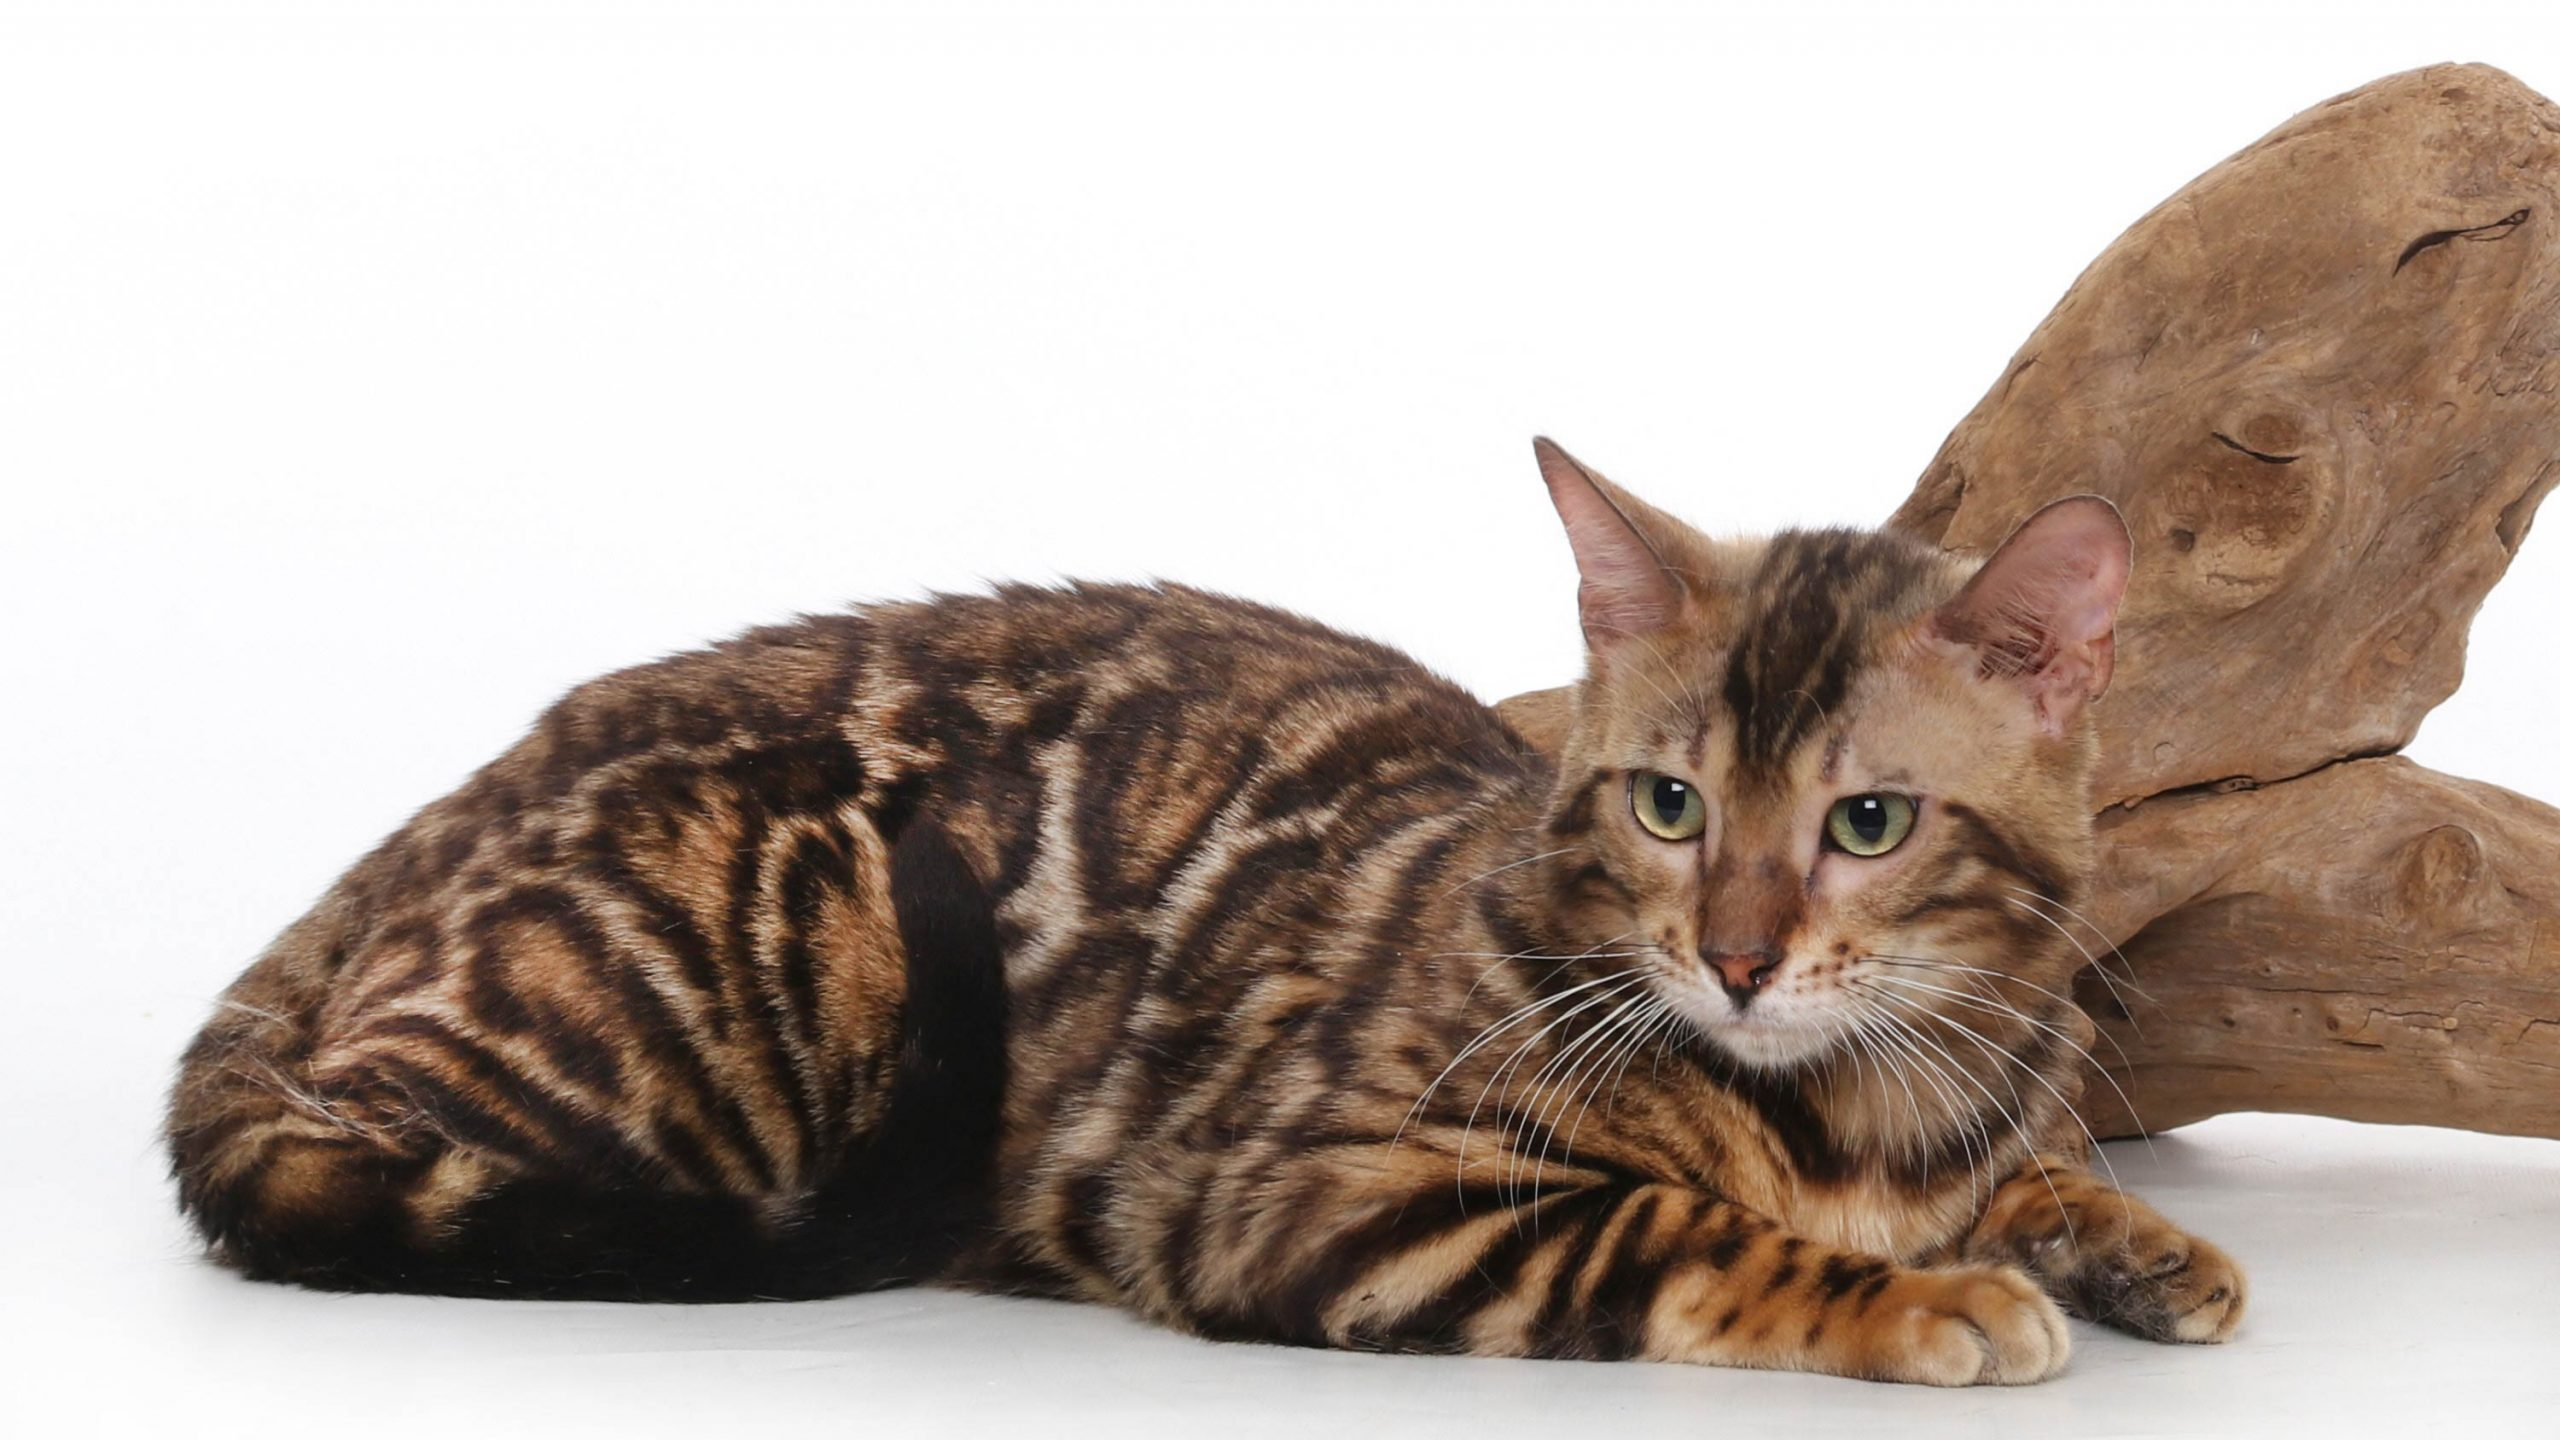 bengal-cat-resting-white-background-and-wooden-log